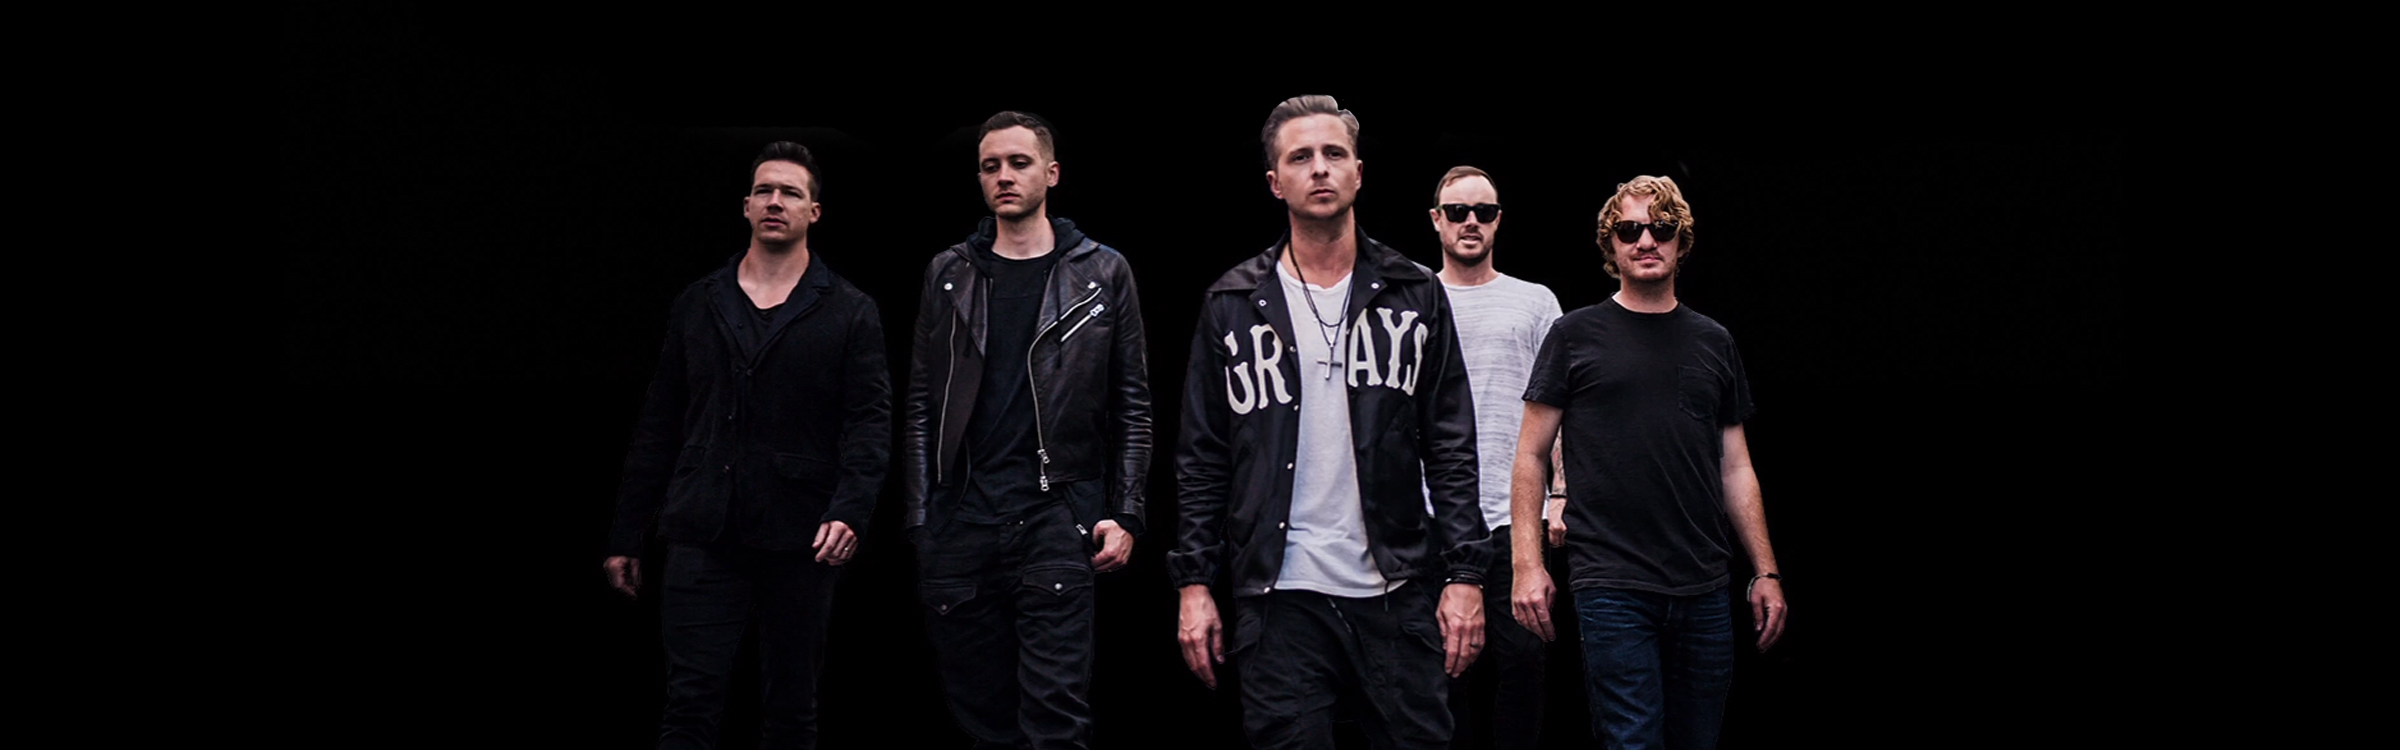 Onerepublic ai header